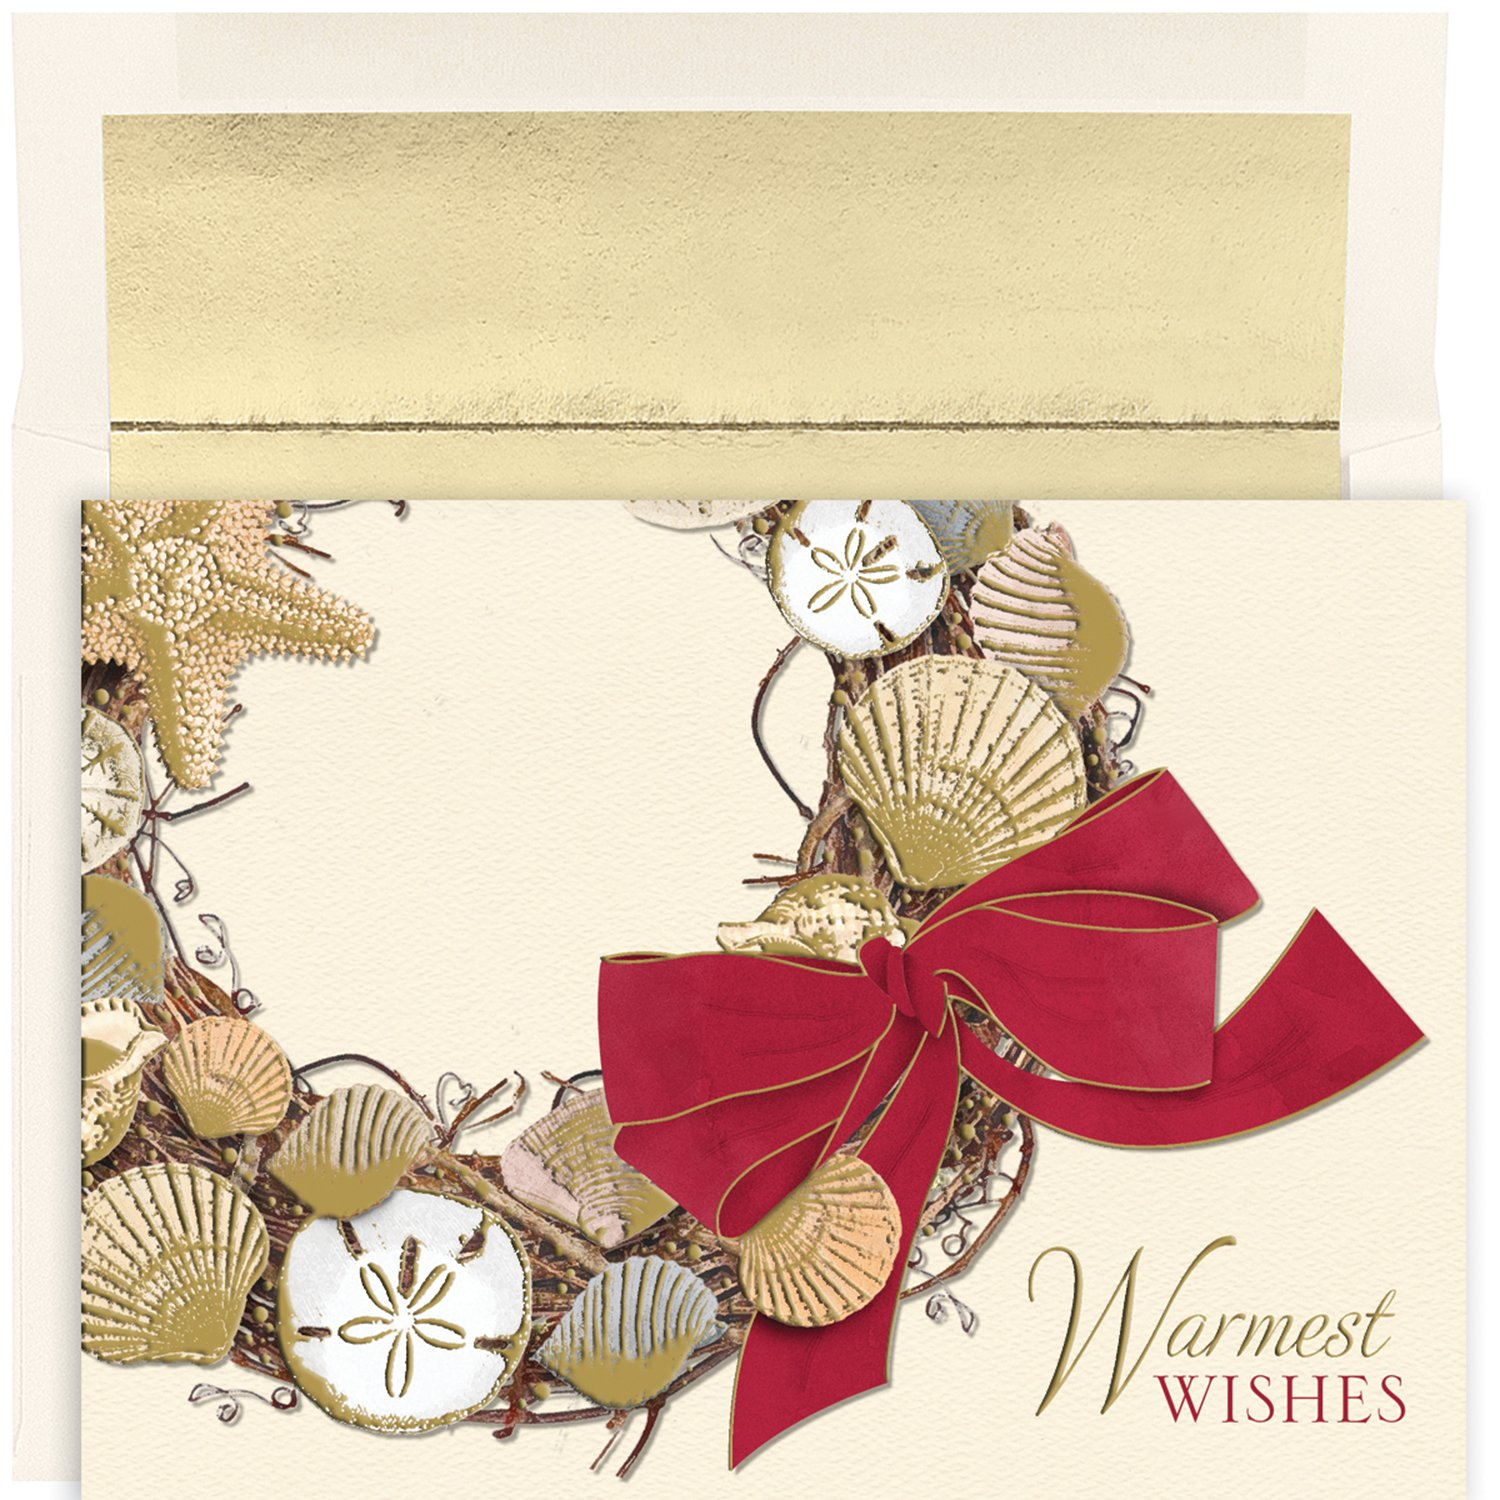 Great Papers Holiday Greeting Card, Gold Palms, 18 Cards/18 Foil-Lined Envelopes, 20cm x 14cm Sourced Inc. 866600